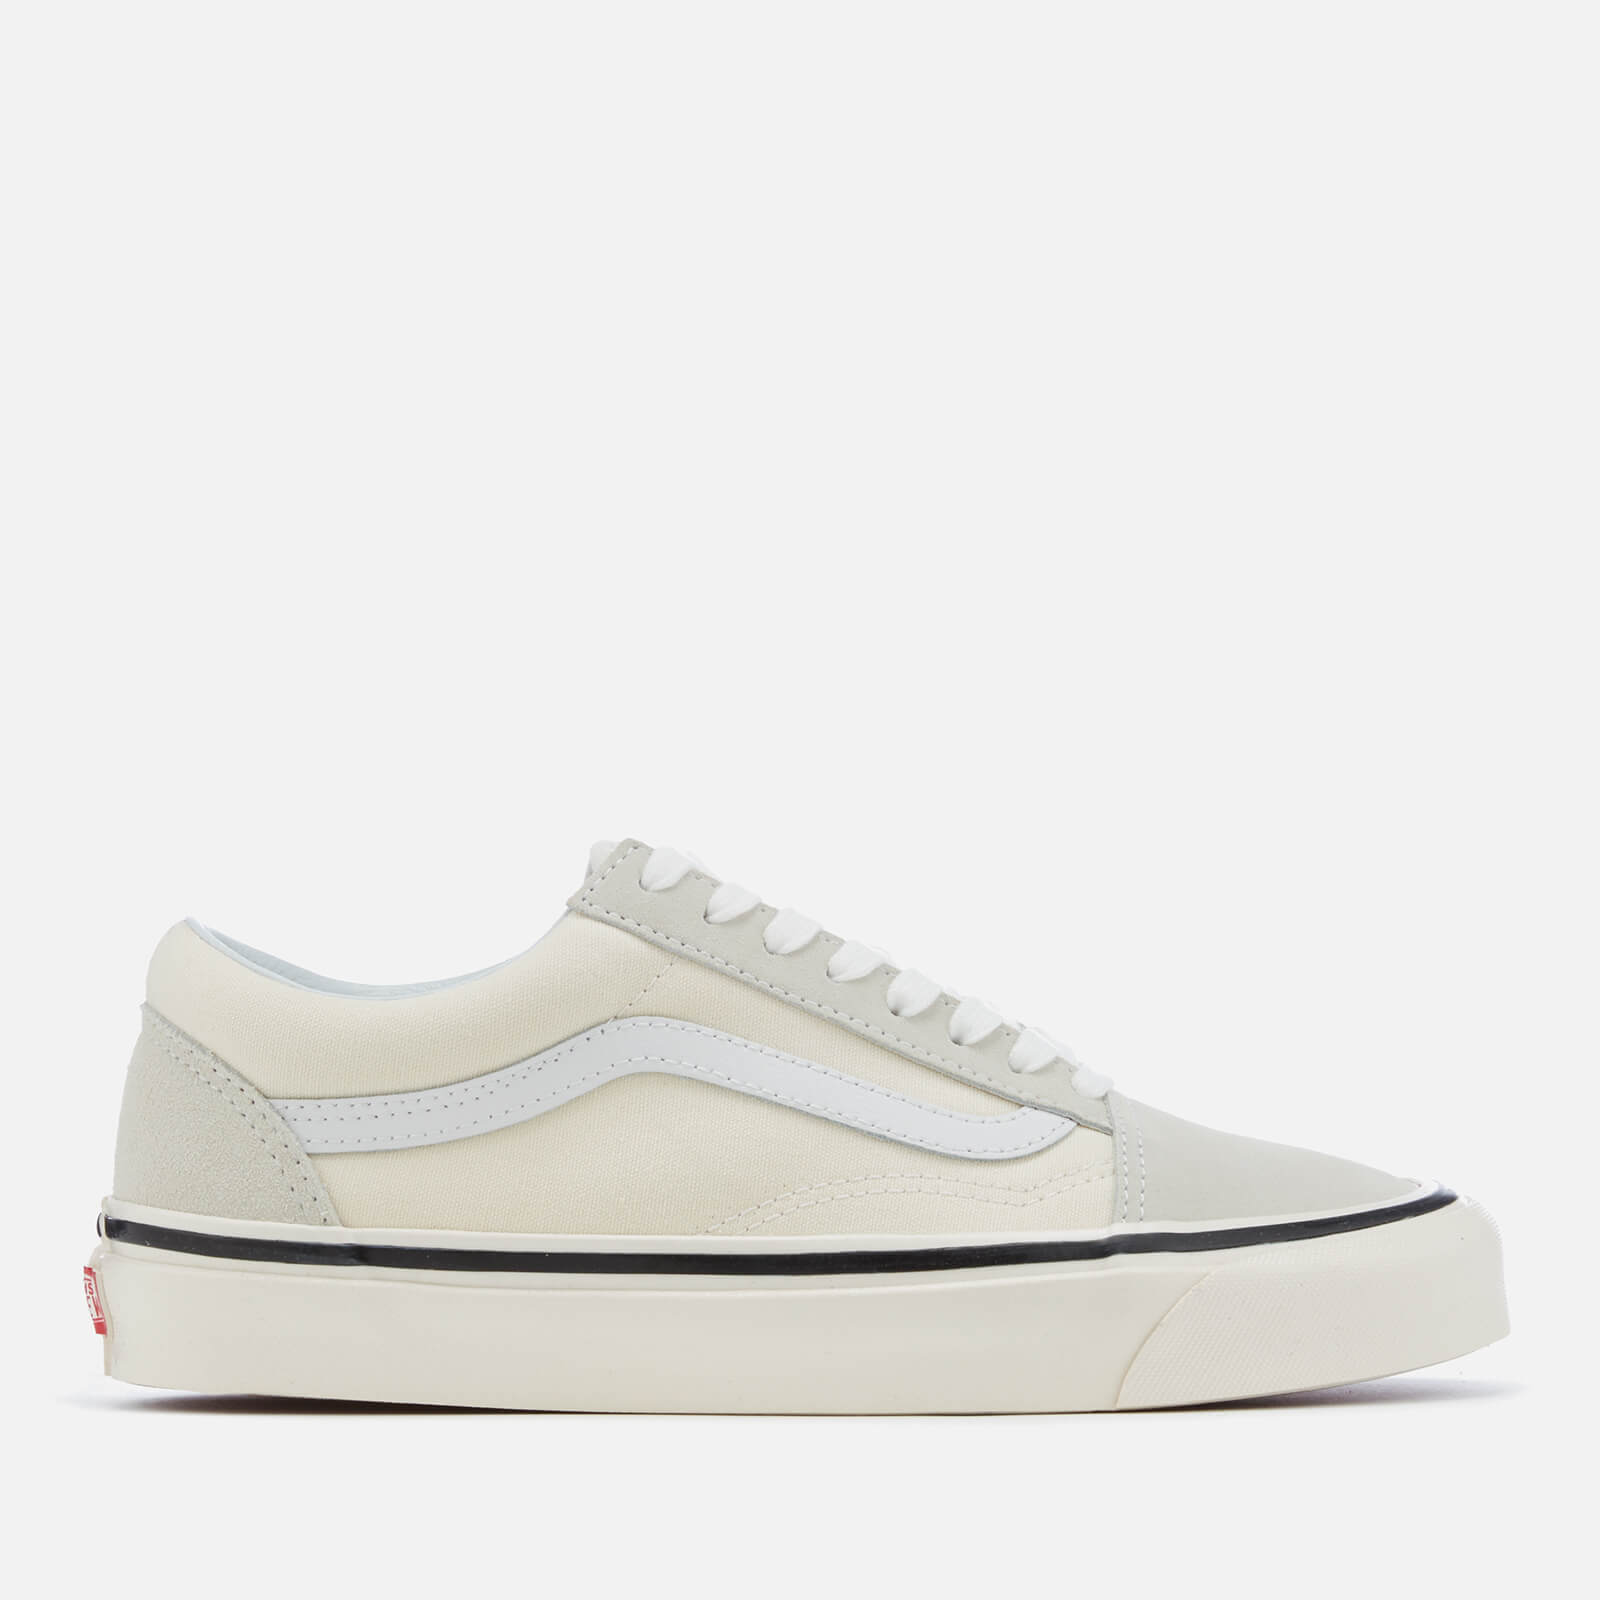 00889350cb2 Vans Anaheim Old Skool 36 DX Trainers - Classic White - Free UK Delivery  over £50